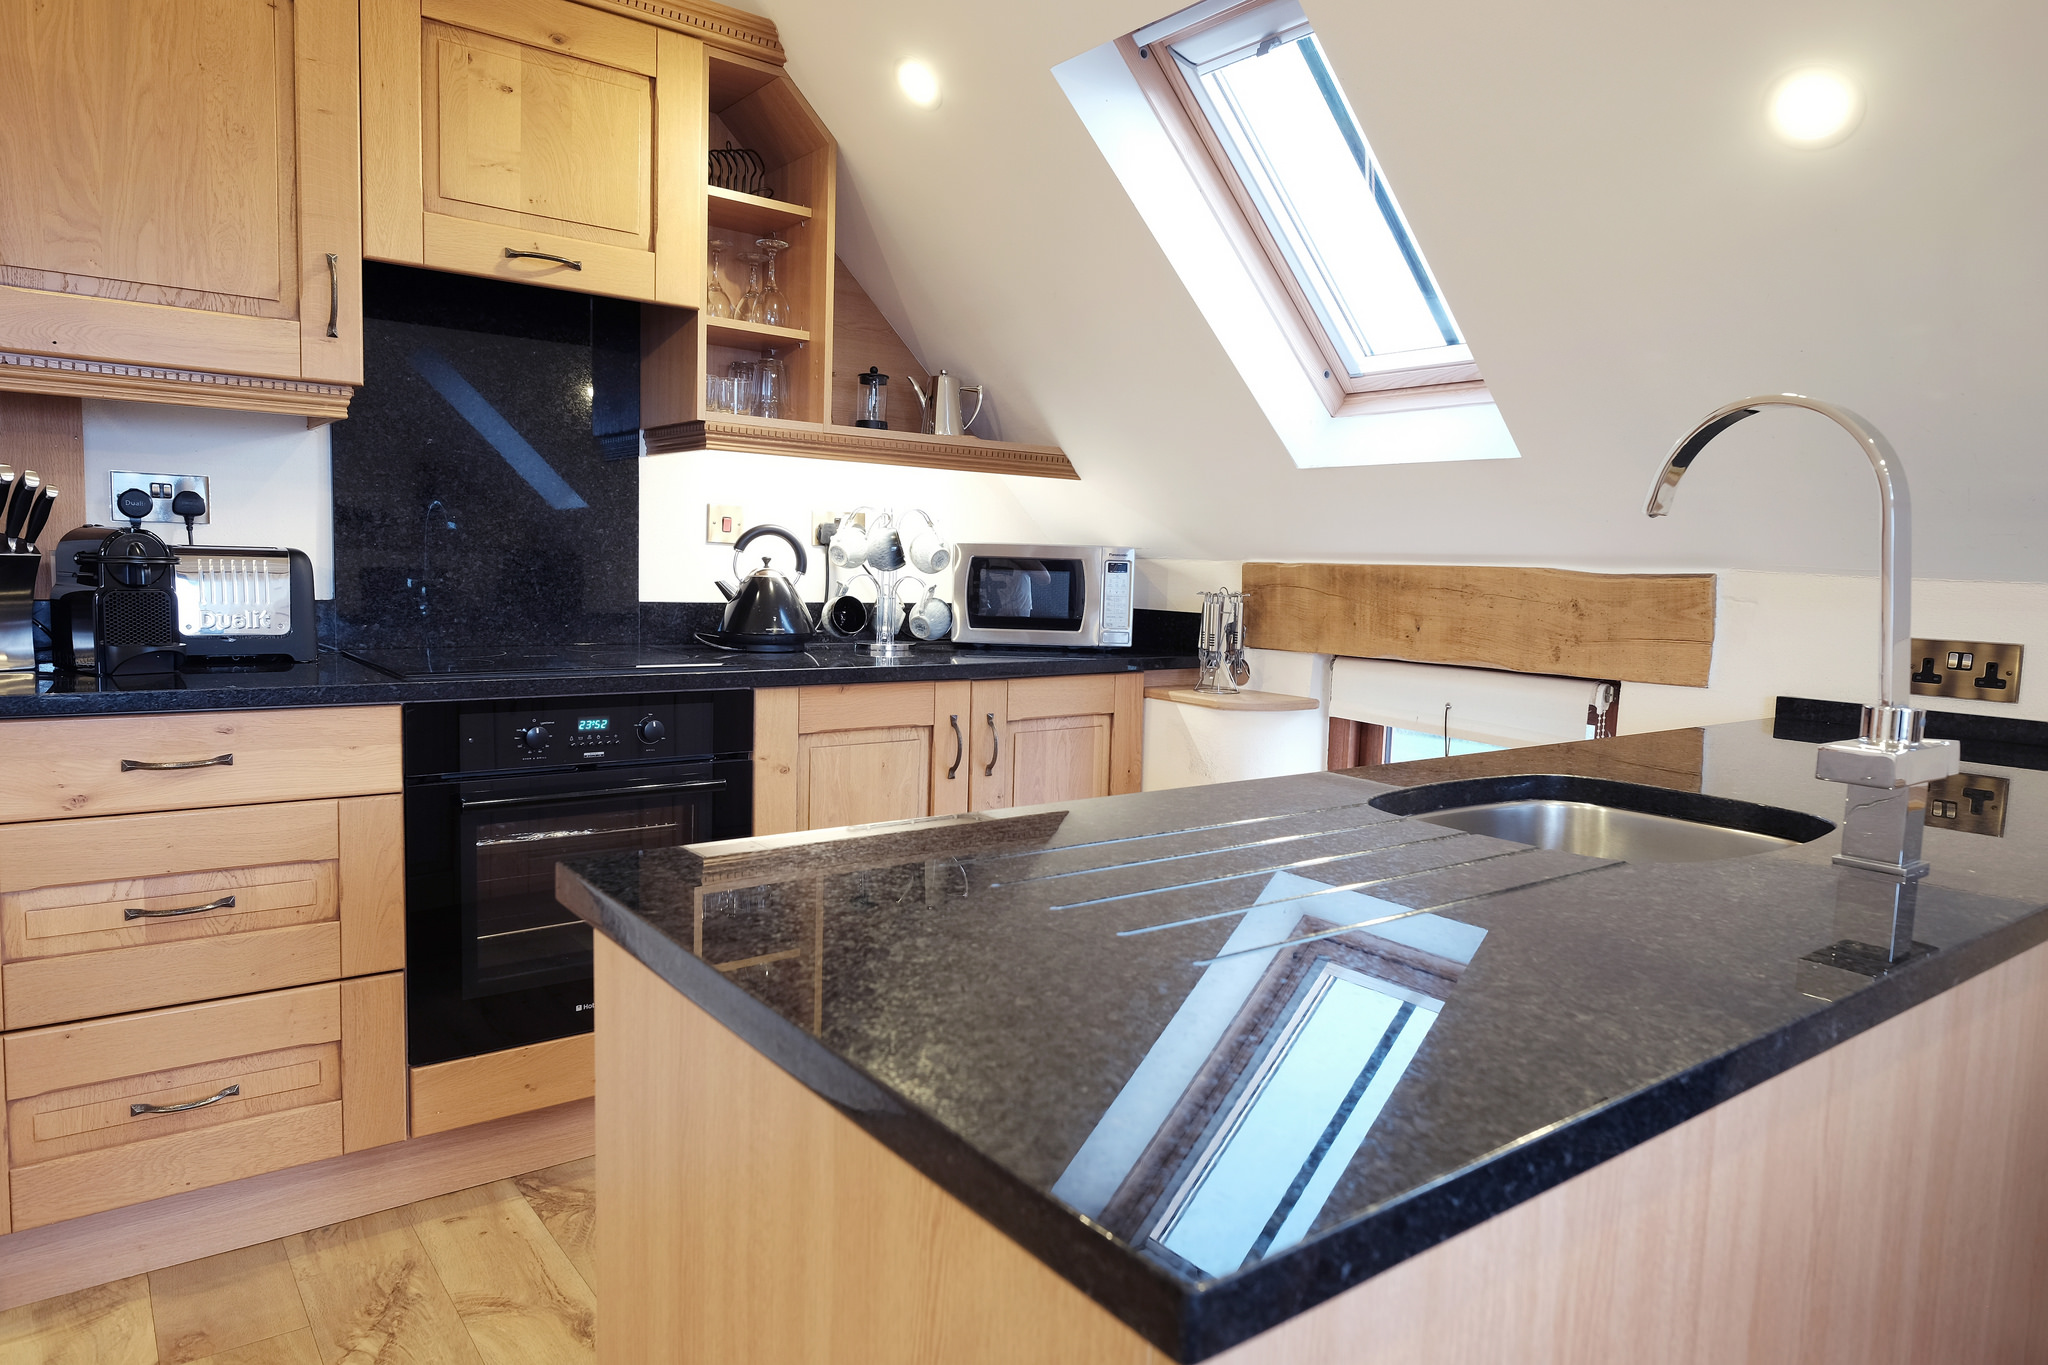 corn-keep-kitchen-with-black-granite-worktop.jpg